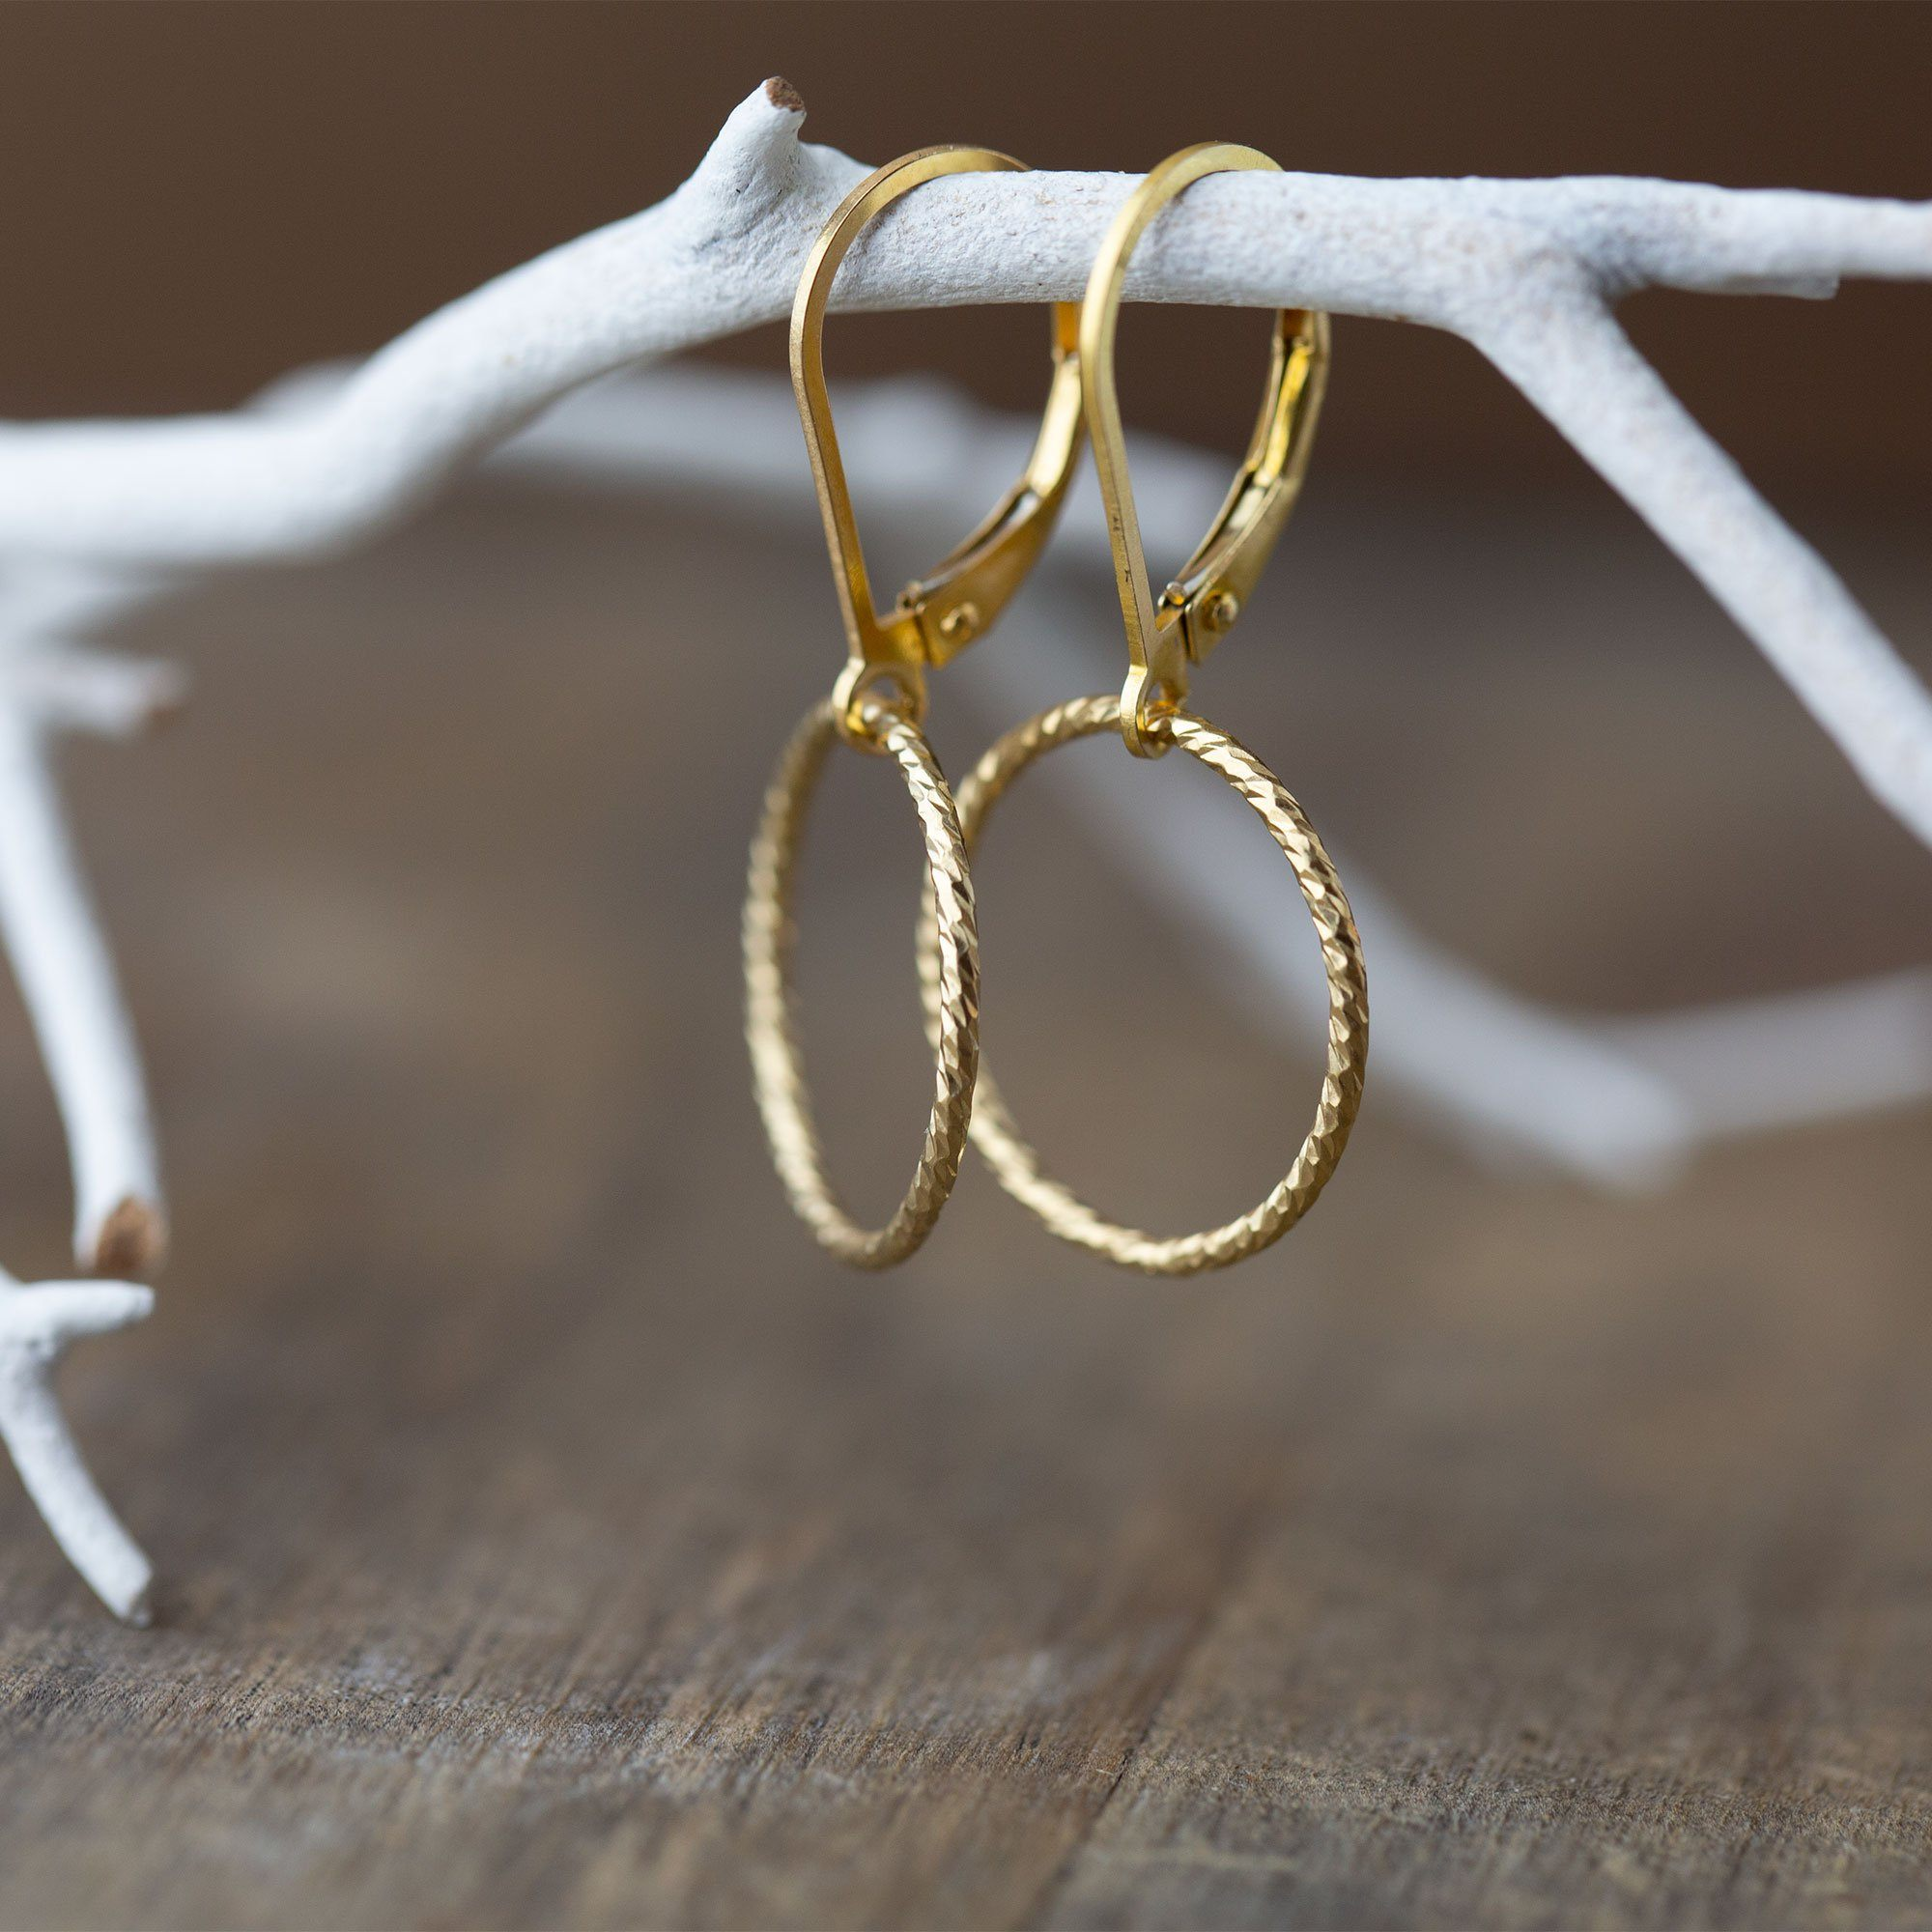 Sparkle Gold Circle Lever-back Earrings - Handmade Jewelry by Burnish